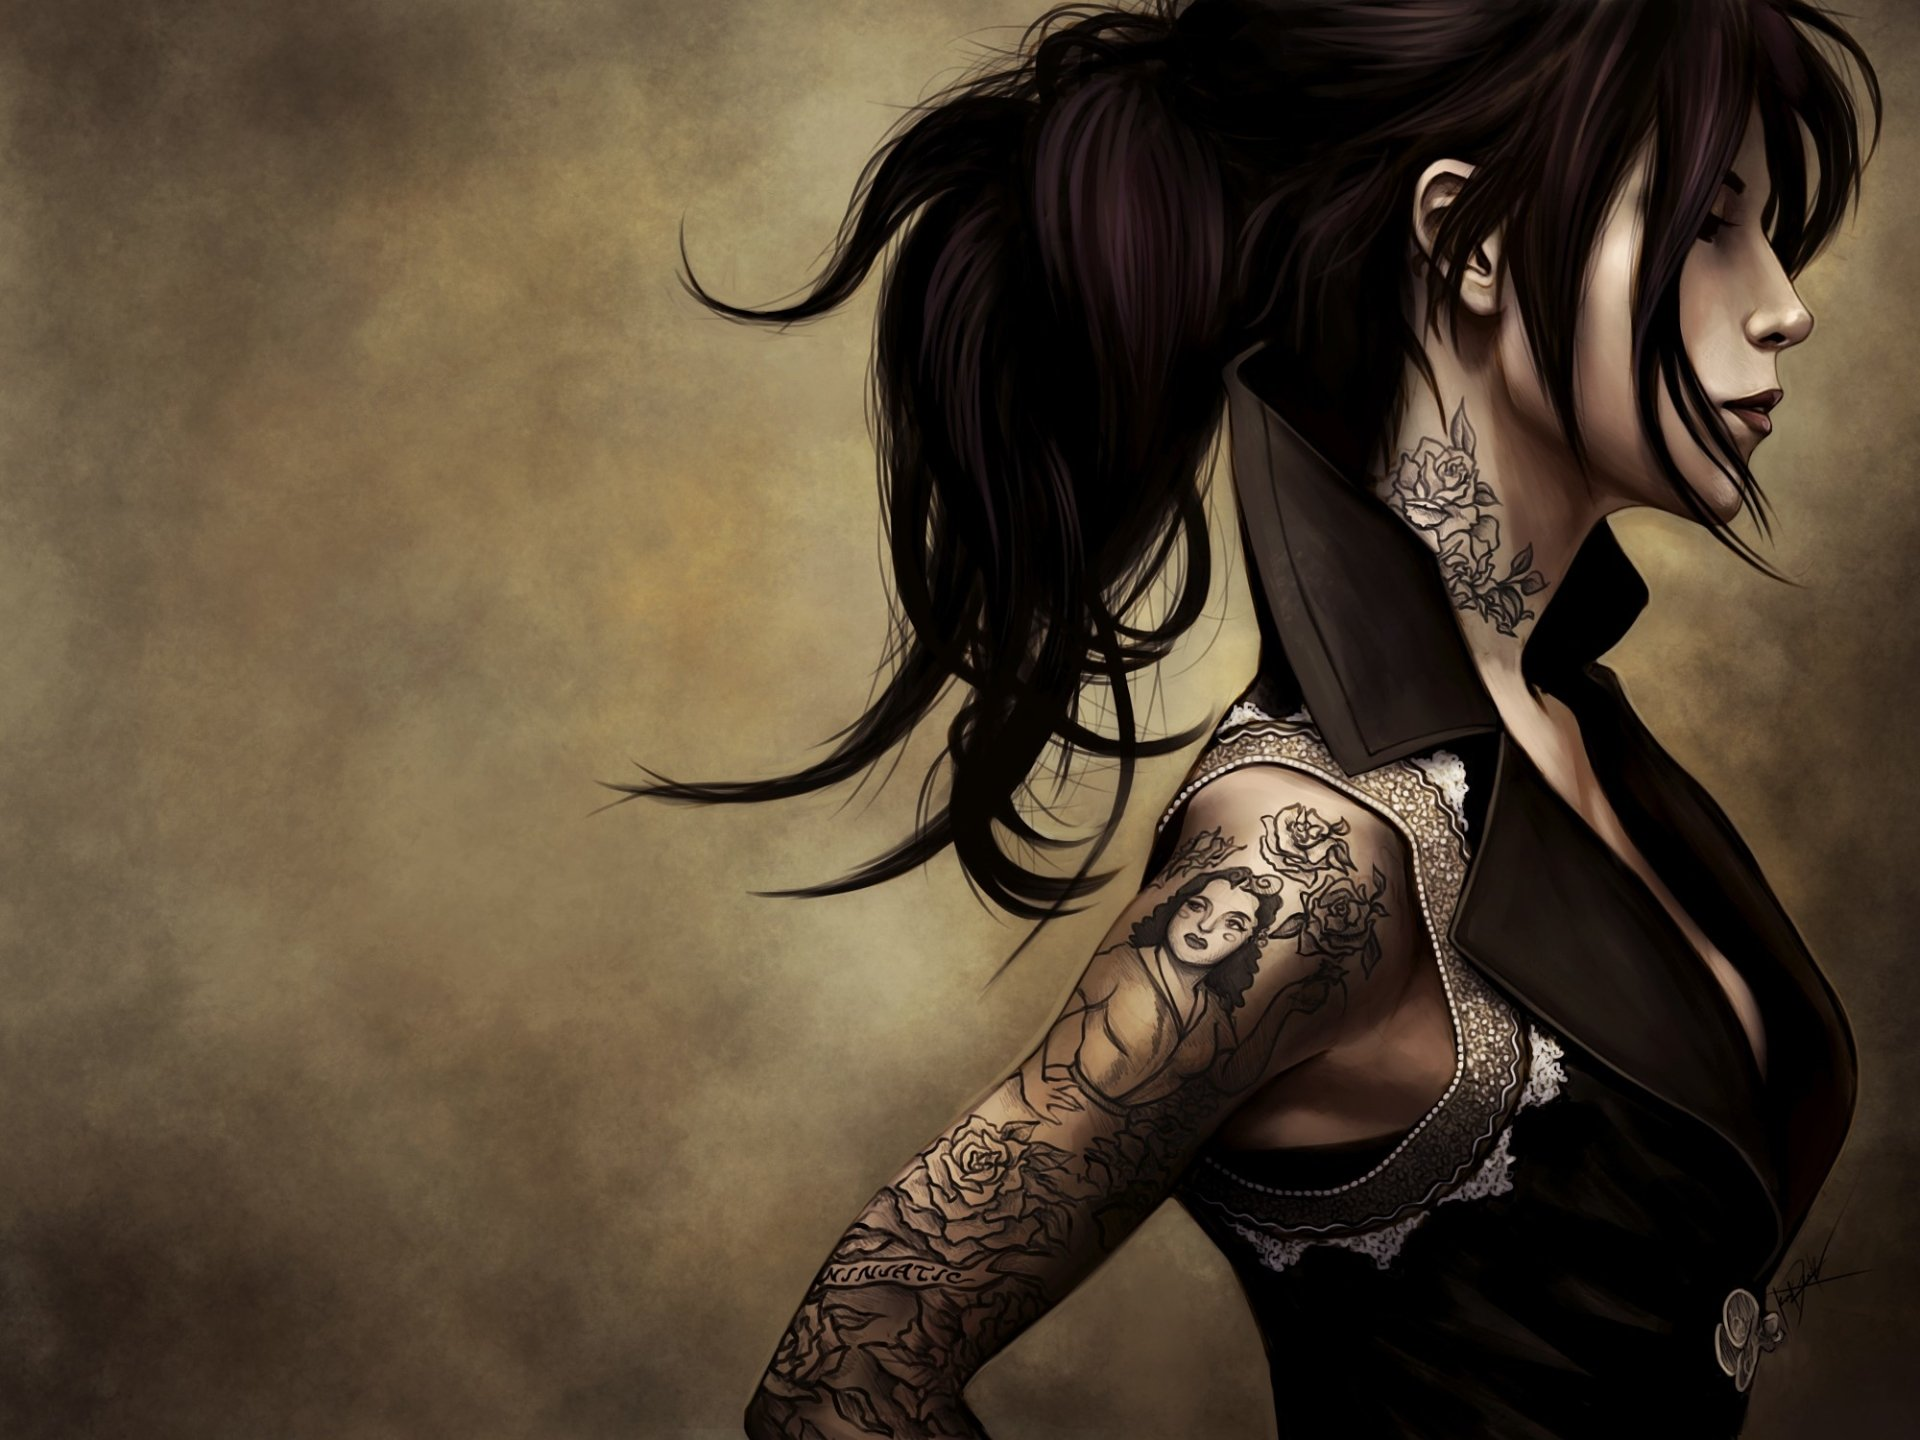 CGI - Women  Tattoo Gothic Woman Wallpaper